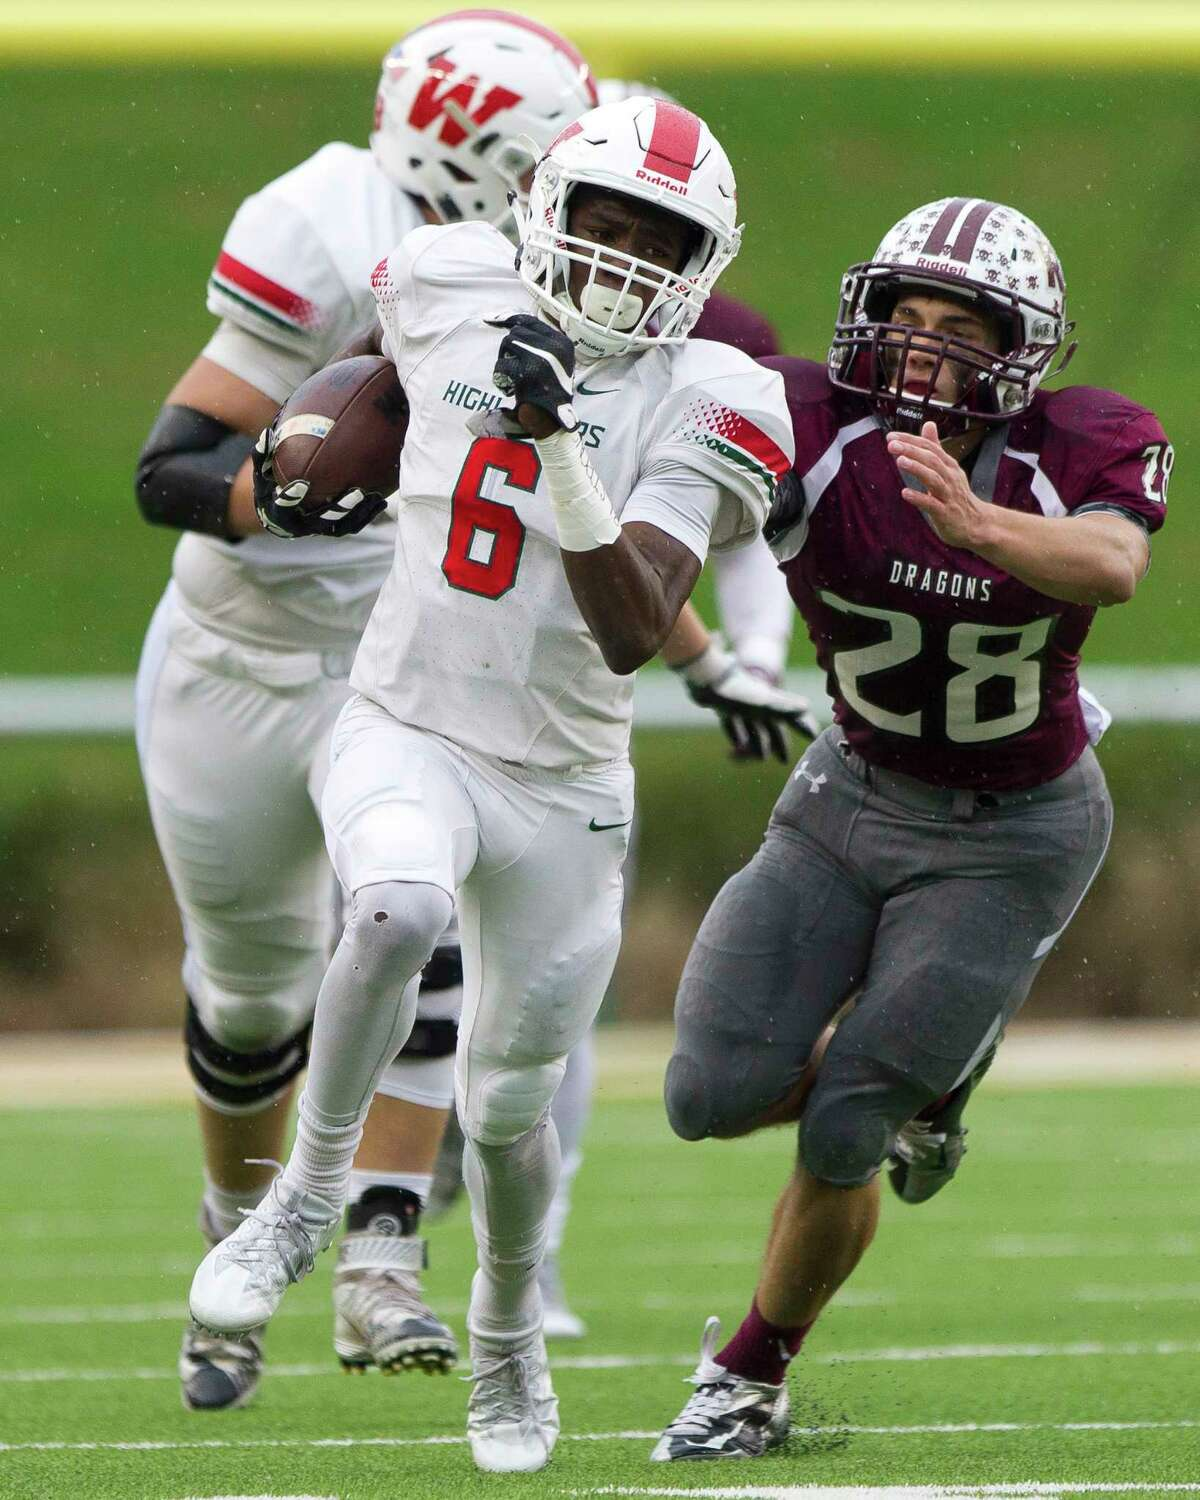 The Woodlands wide receiver Kesean Carter (6) was one of four members of the Highlanders' state-bound football team to be selected to the Associate Pressé?• Class 6A All-State team. Senior defensive end and Air Force commit Michael Purcell was selected to the first team, while quarterback Eric Schmid and linebacker Zach La Canfora joined Carter with honorable mention recognitions.